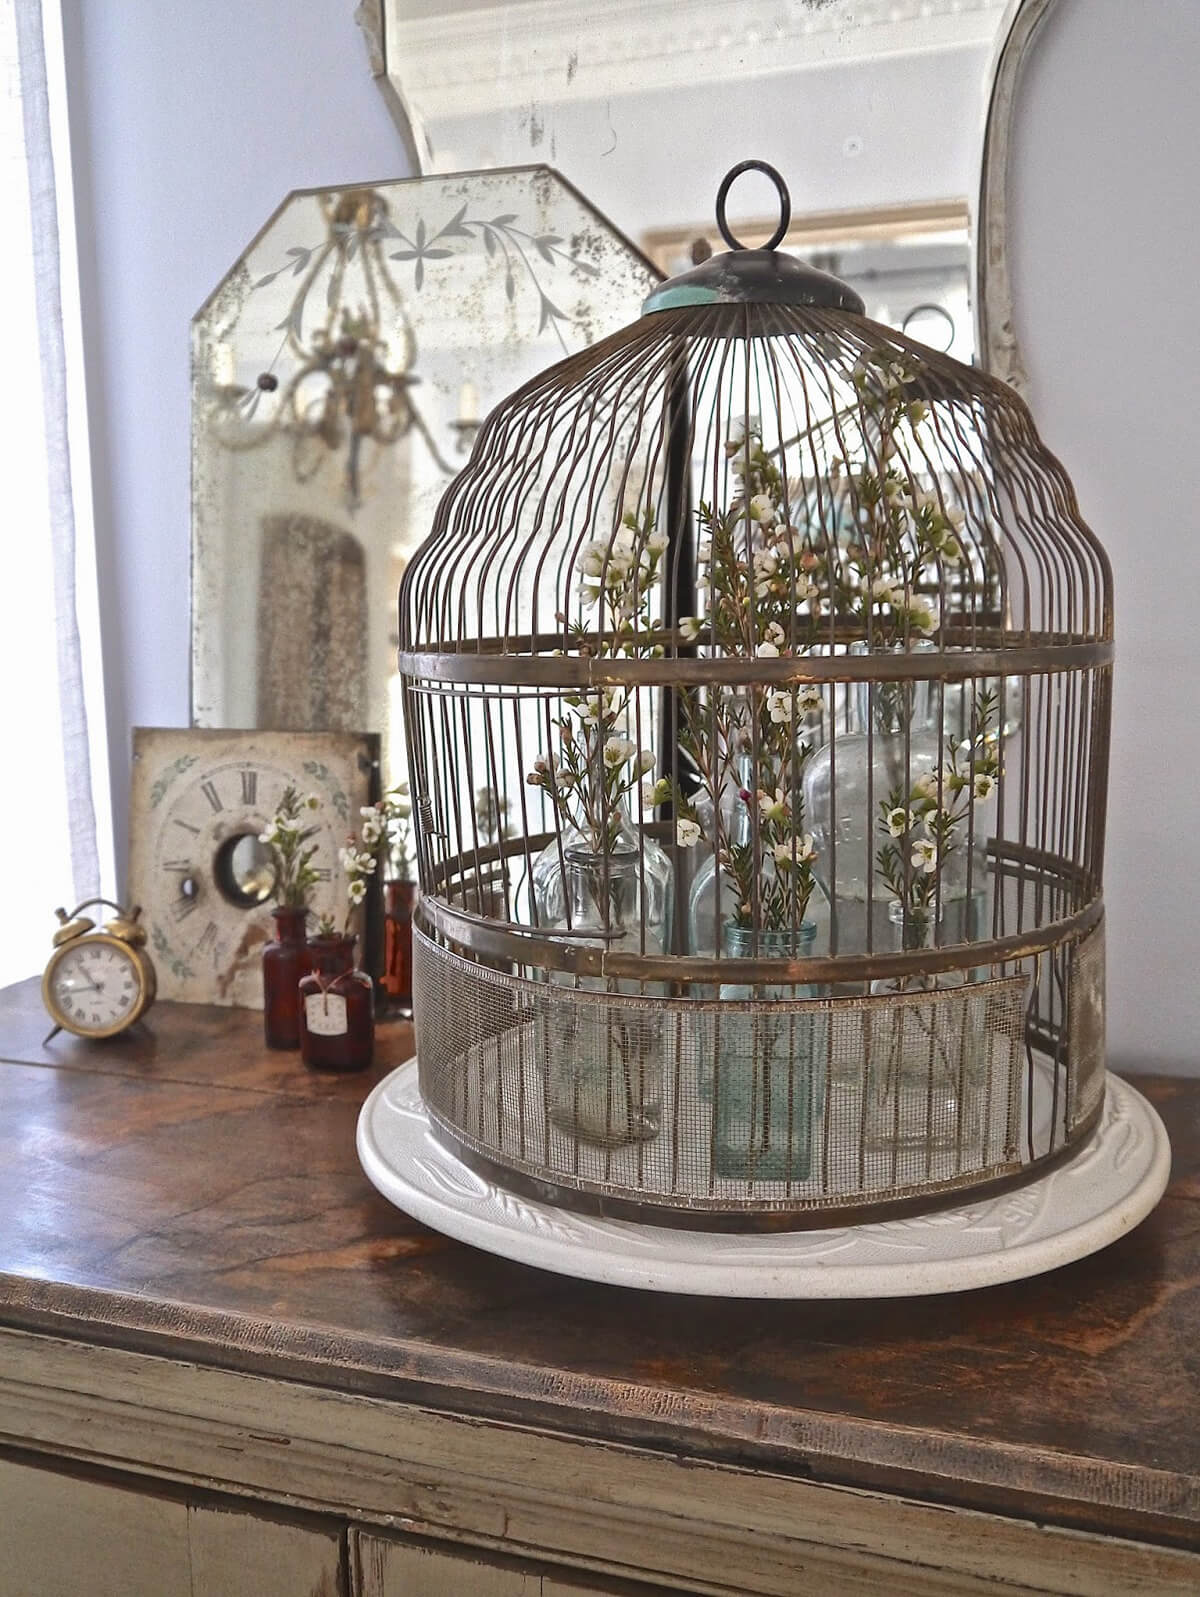 Antique Birdcage for Wildflowers